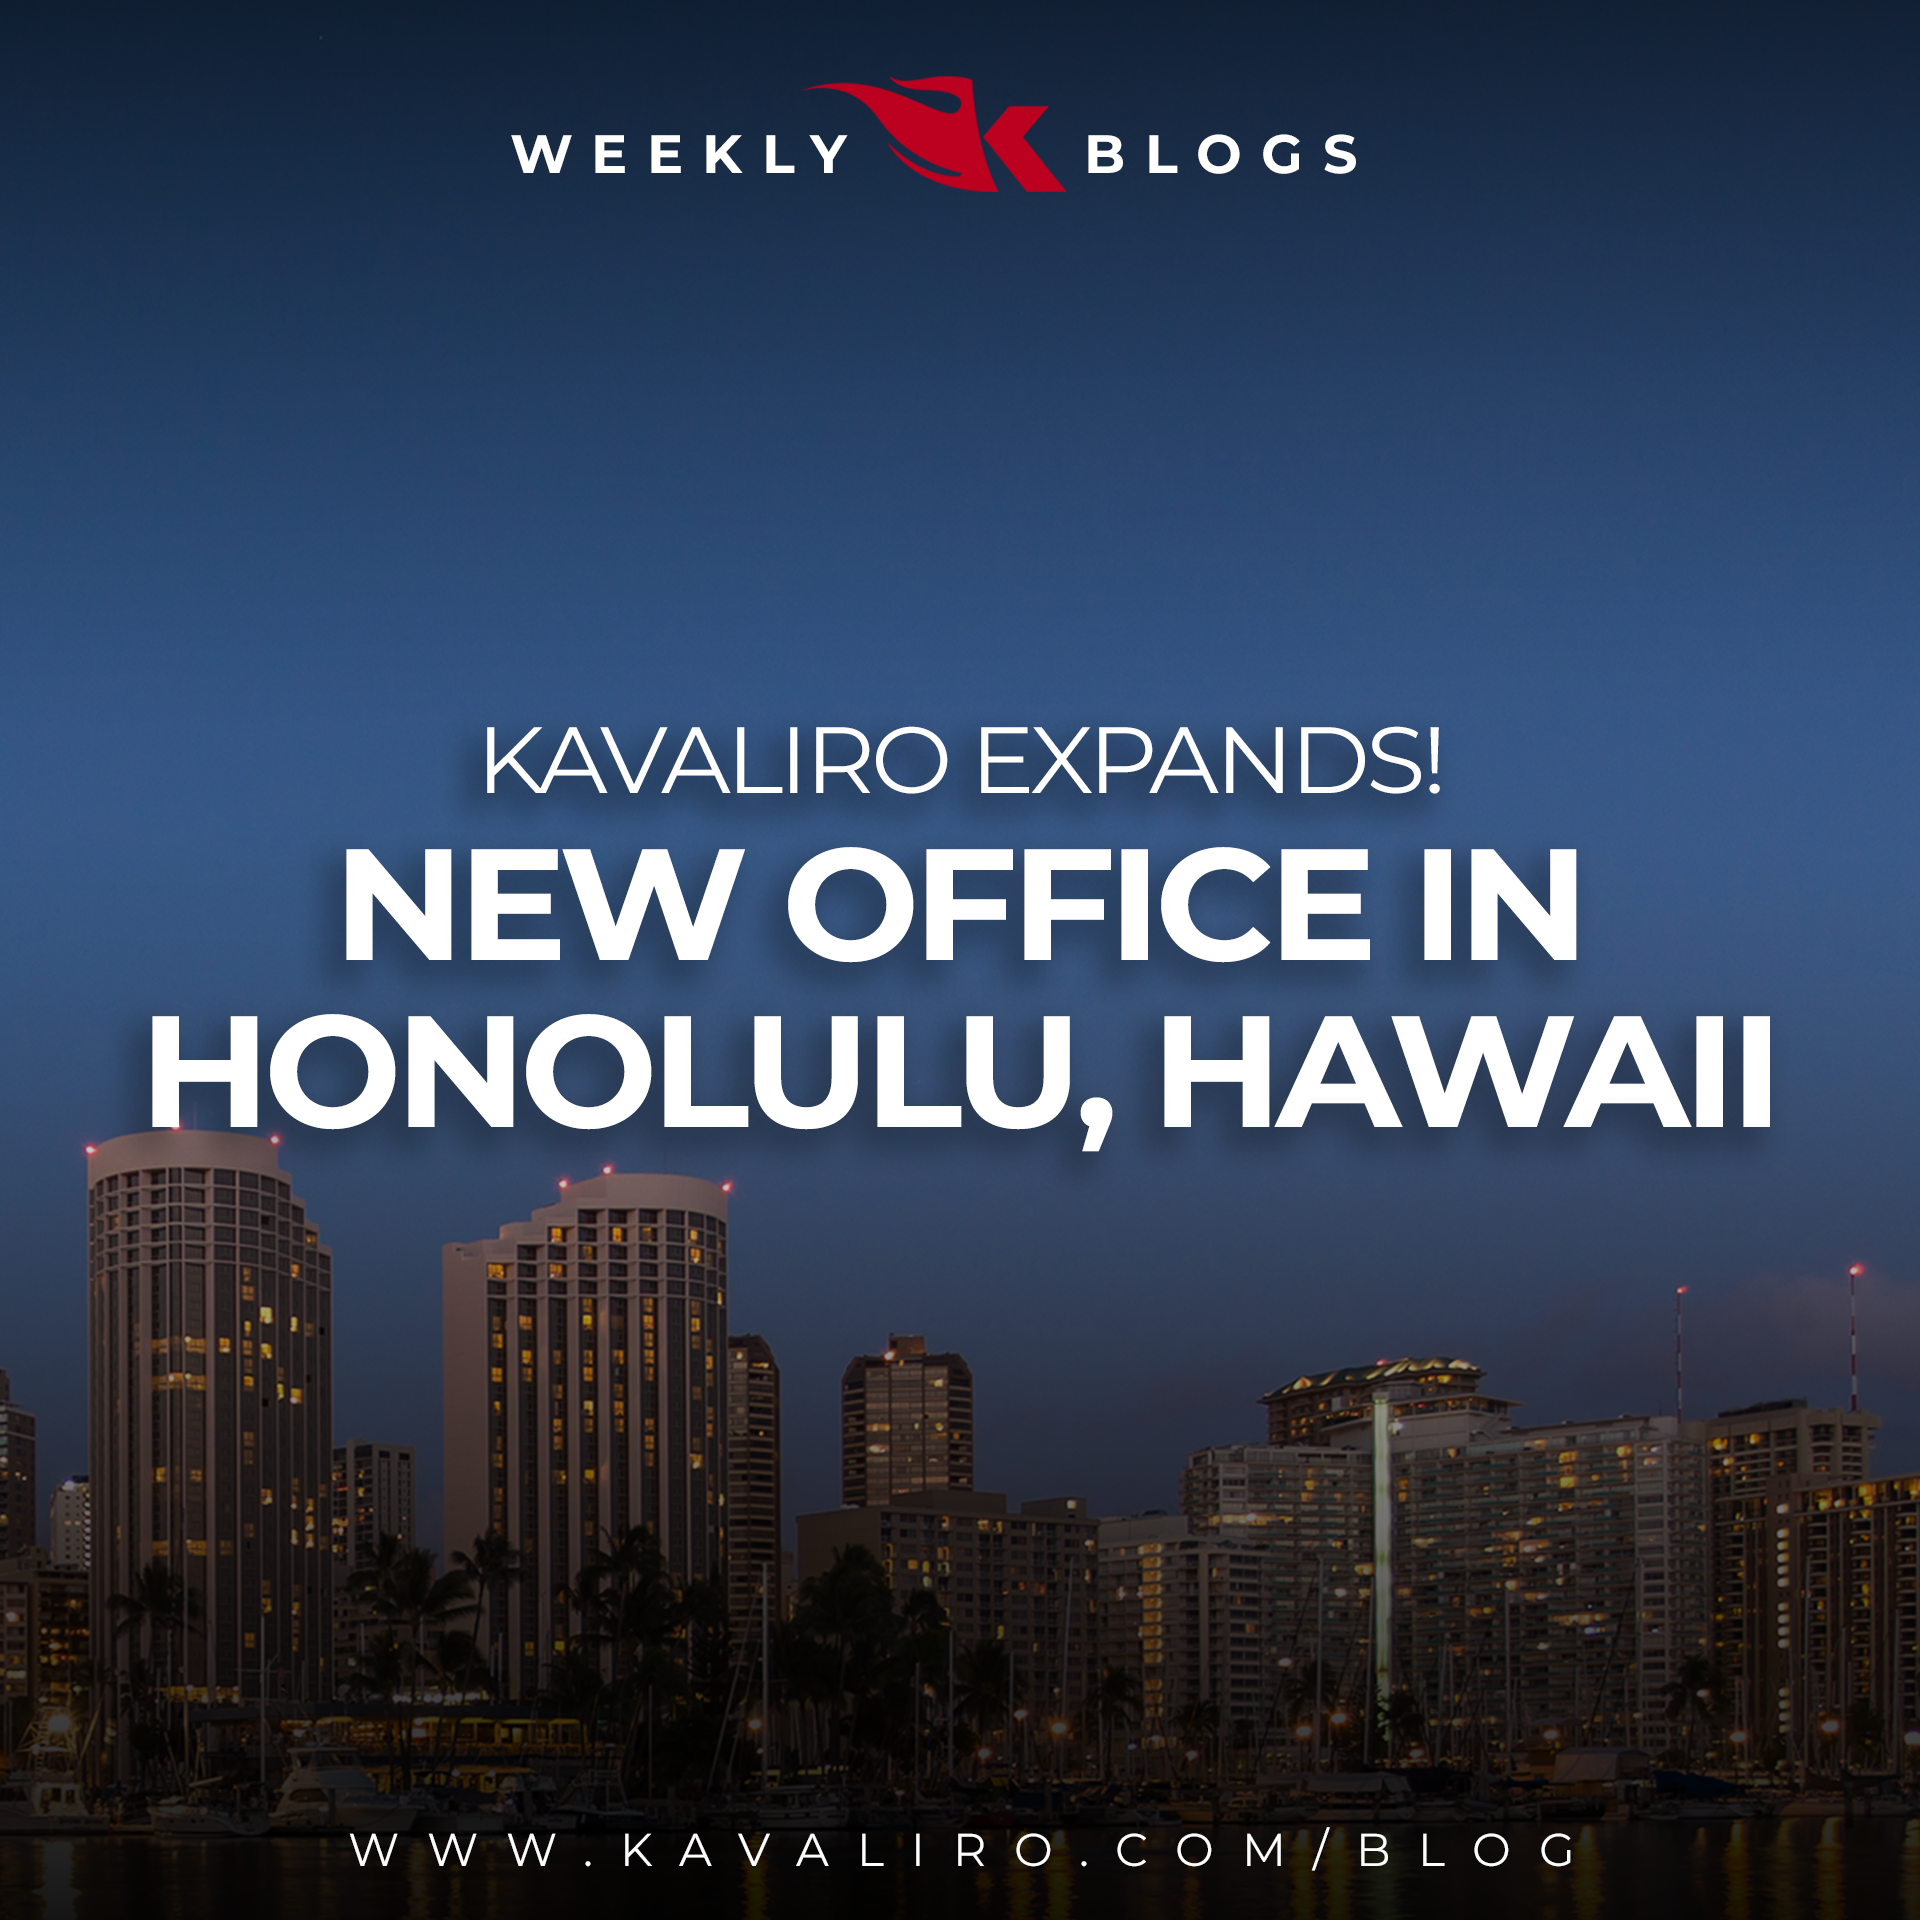 Kavaliro Expands! New Office in Honolulu, Hawaii